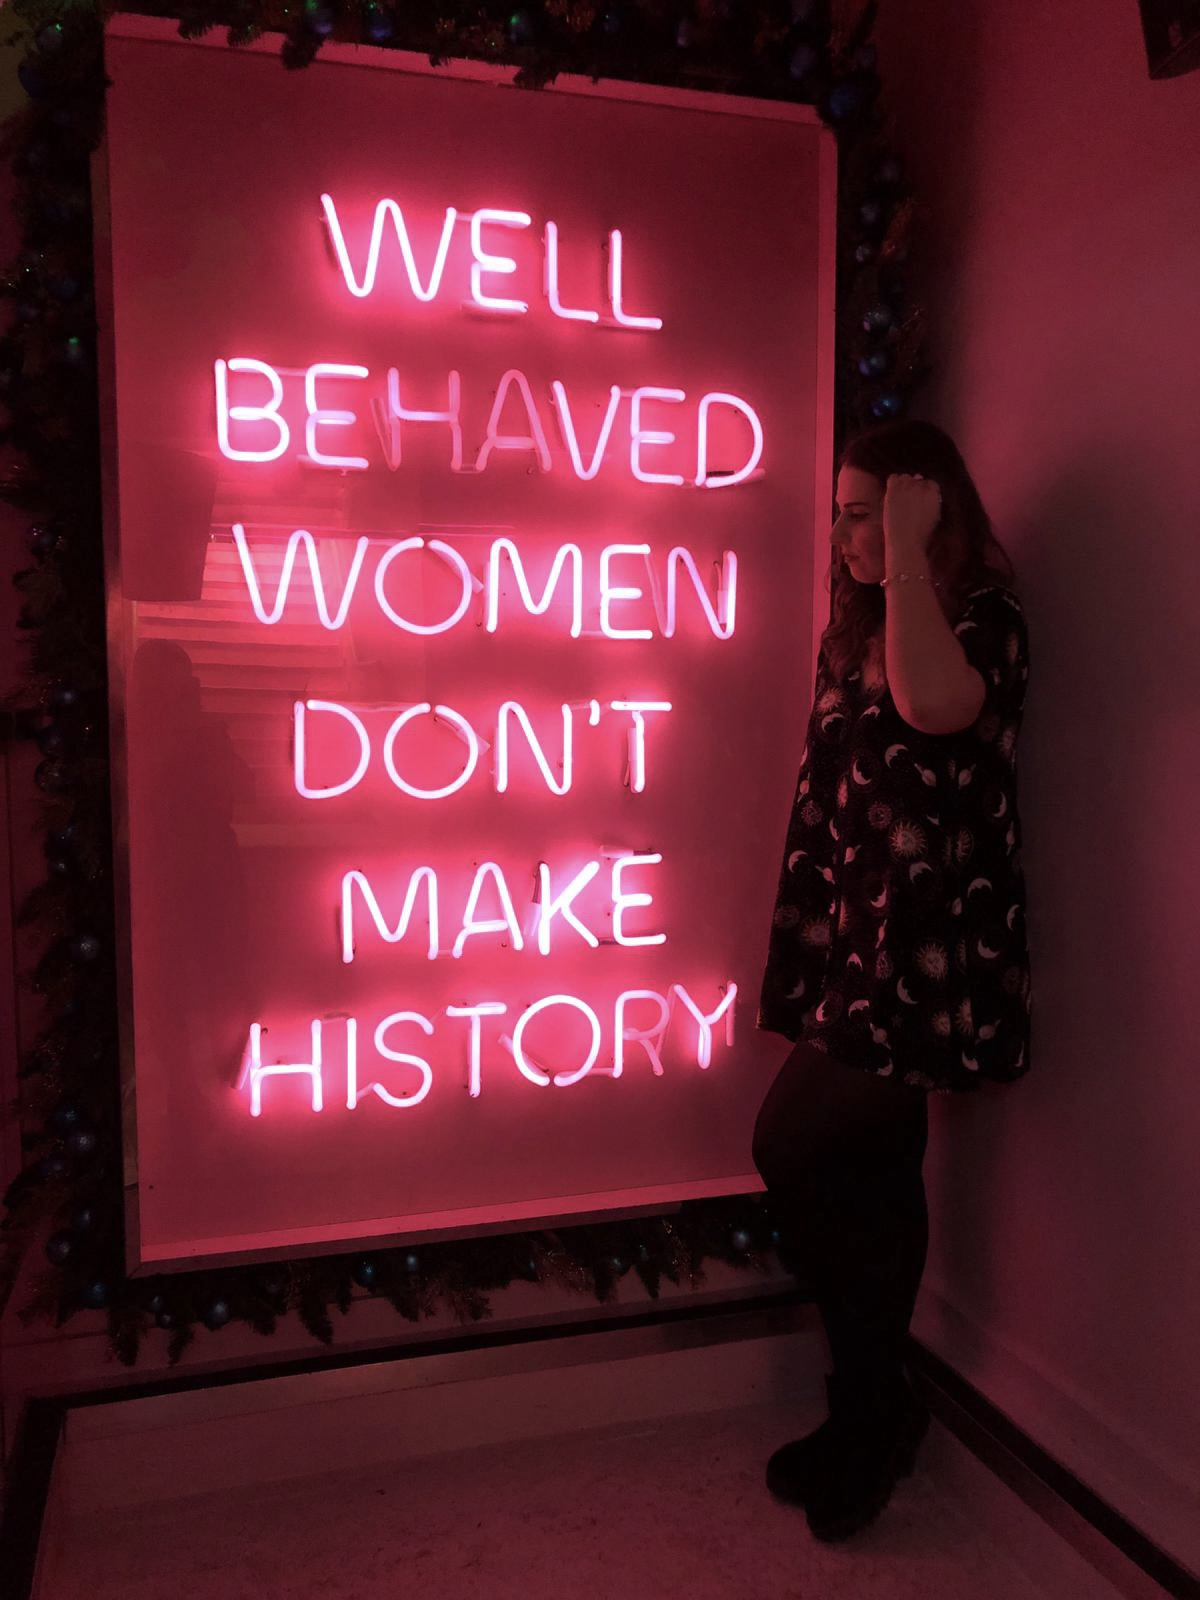 'Well behaved women don't make history' neon sign in Tonight Josephine's